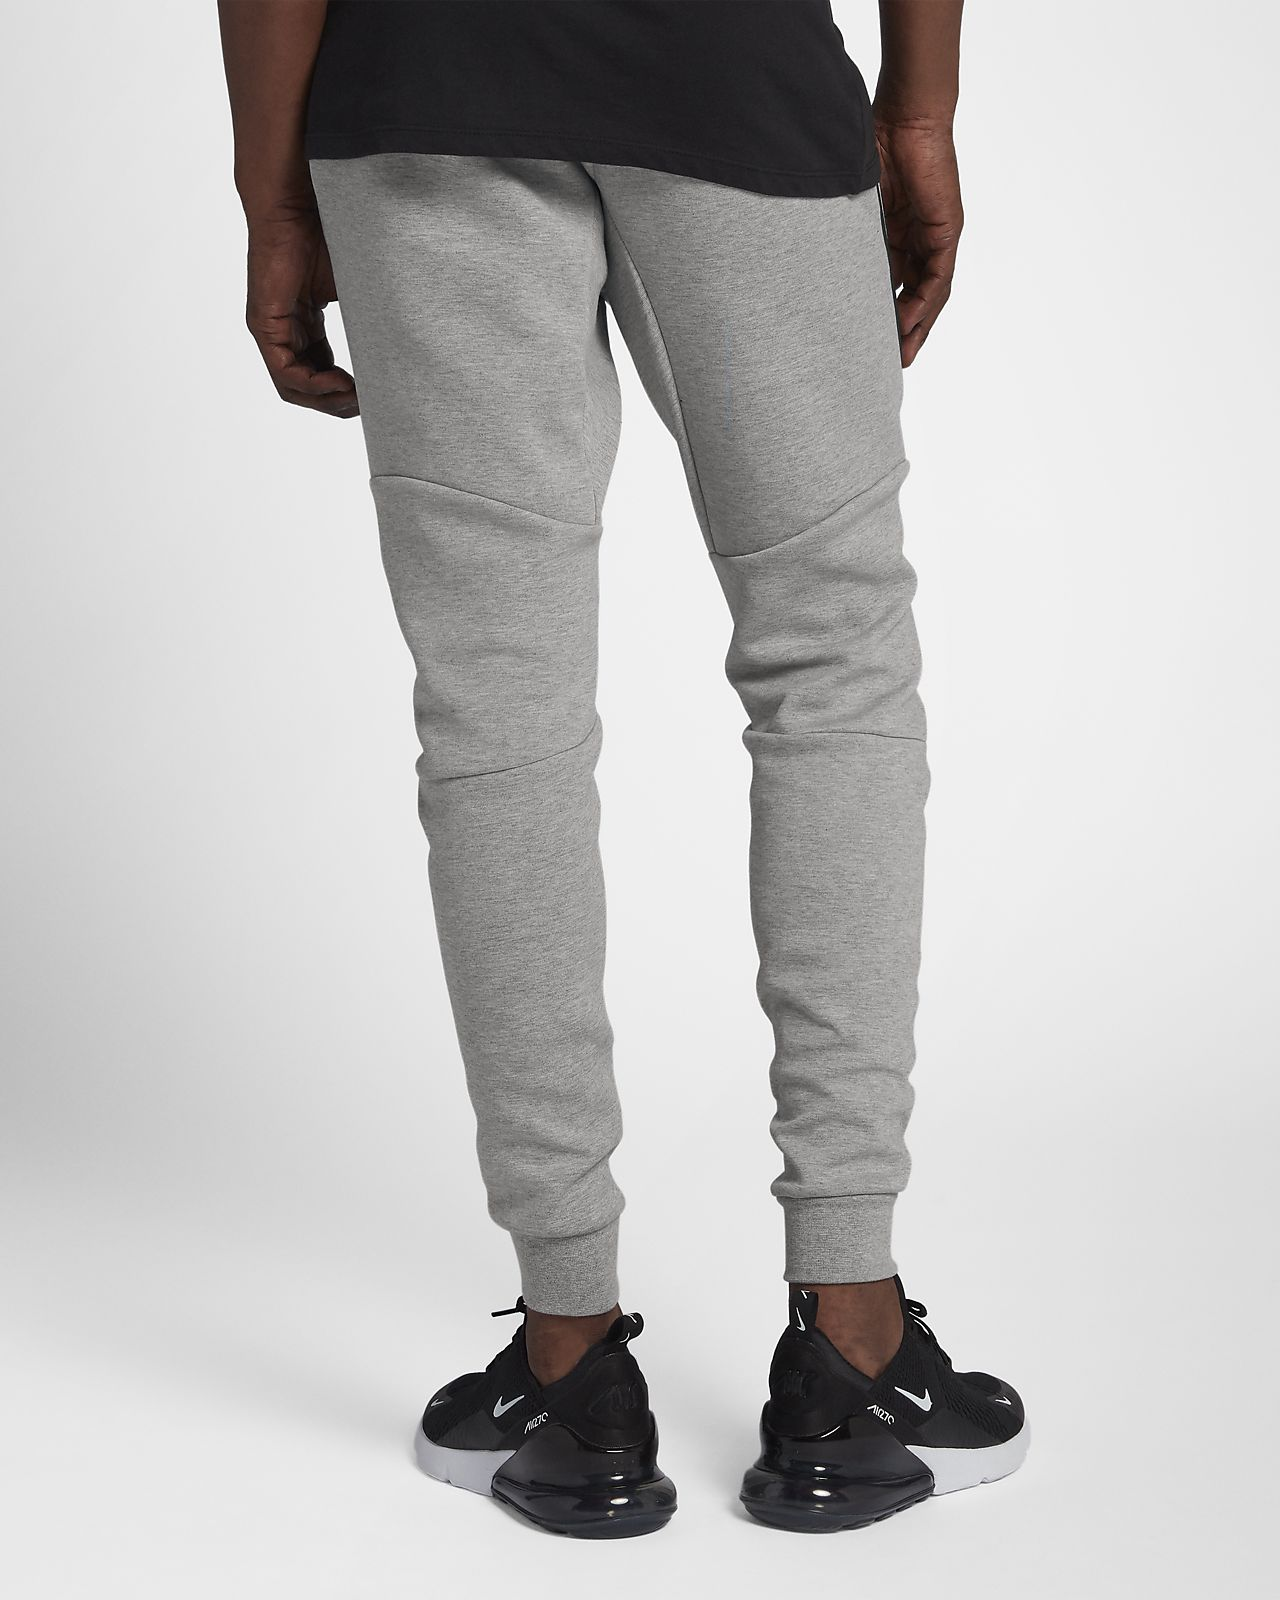 26a19b6190db09 Nike Sportswear Tech Fleece Men s Joggers. Nike.com